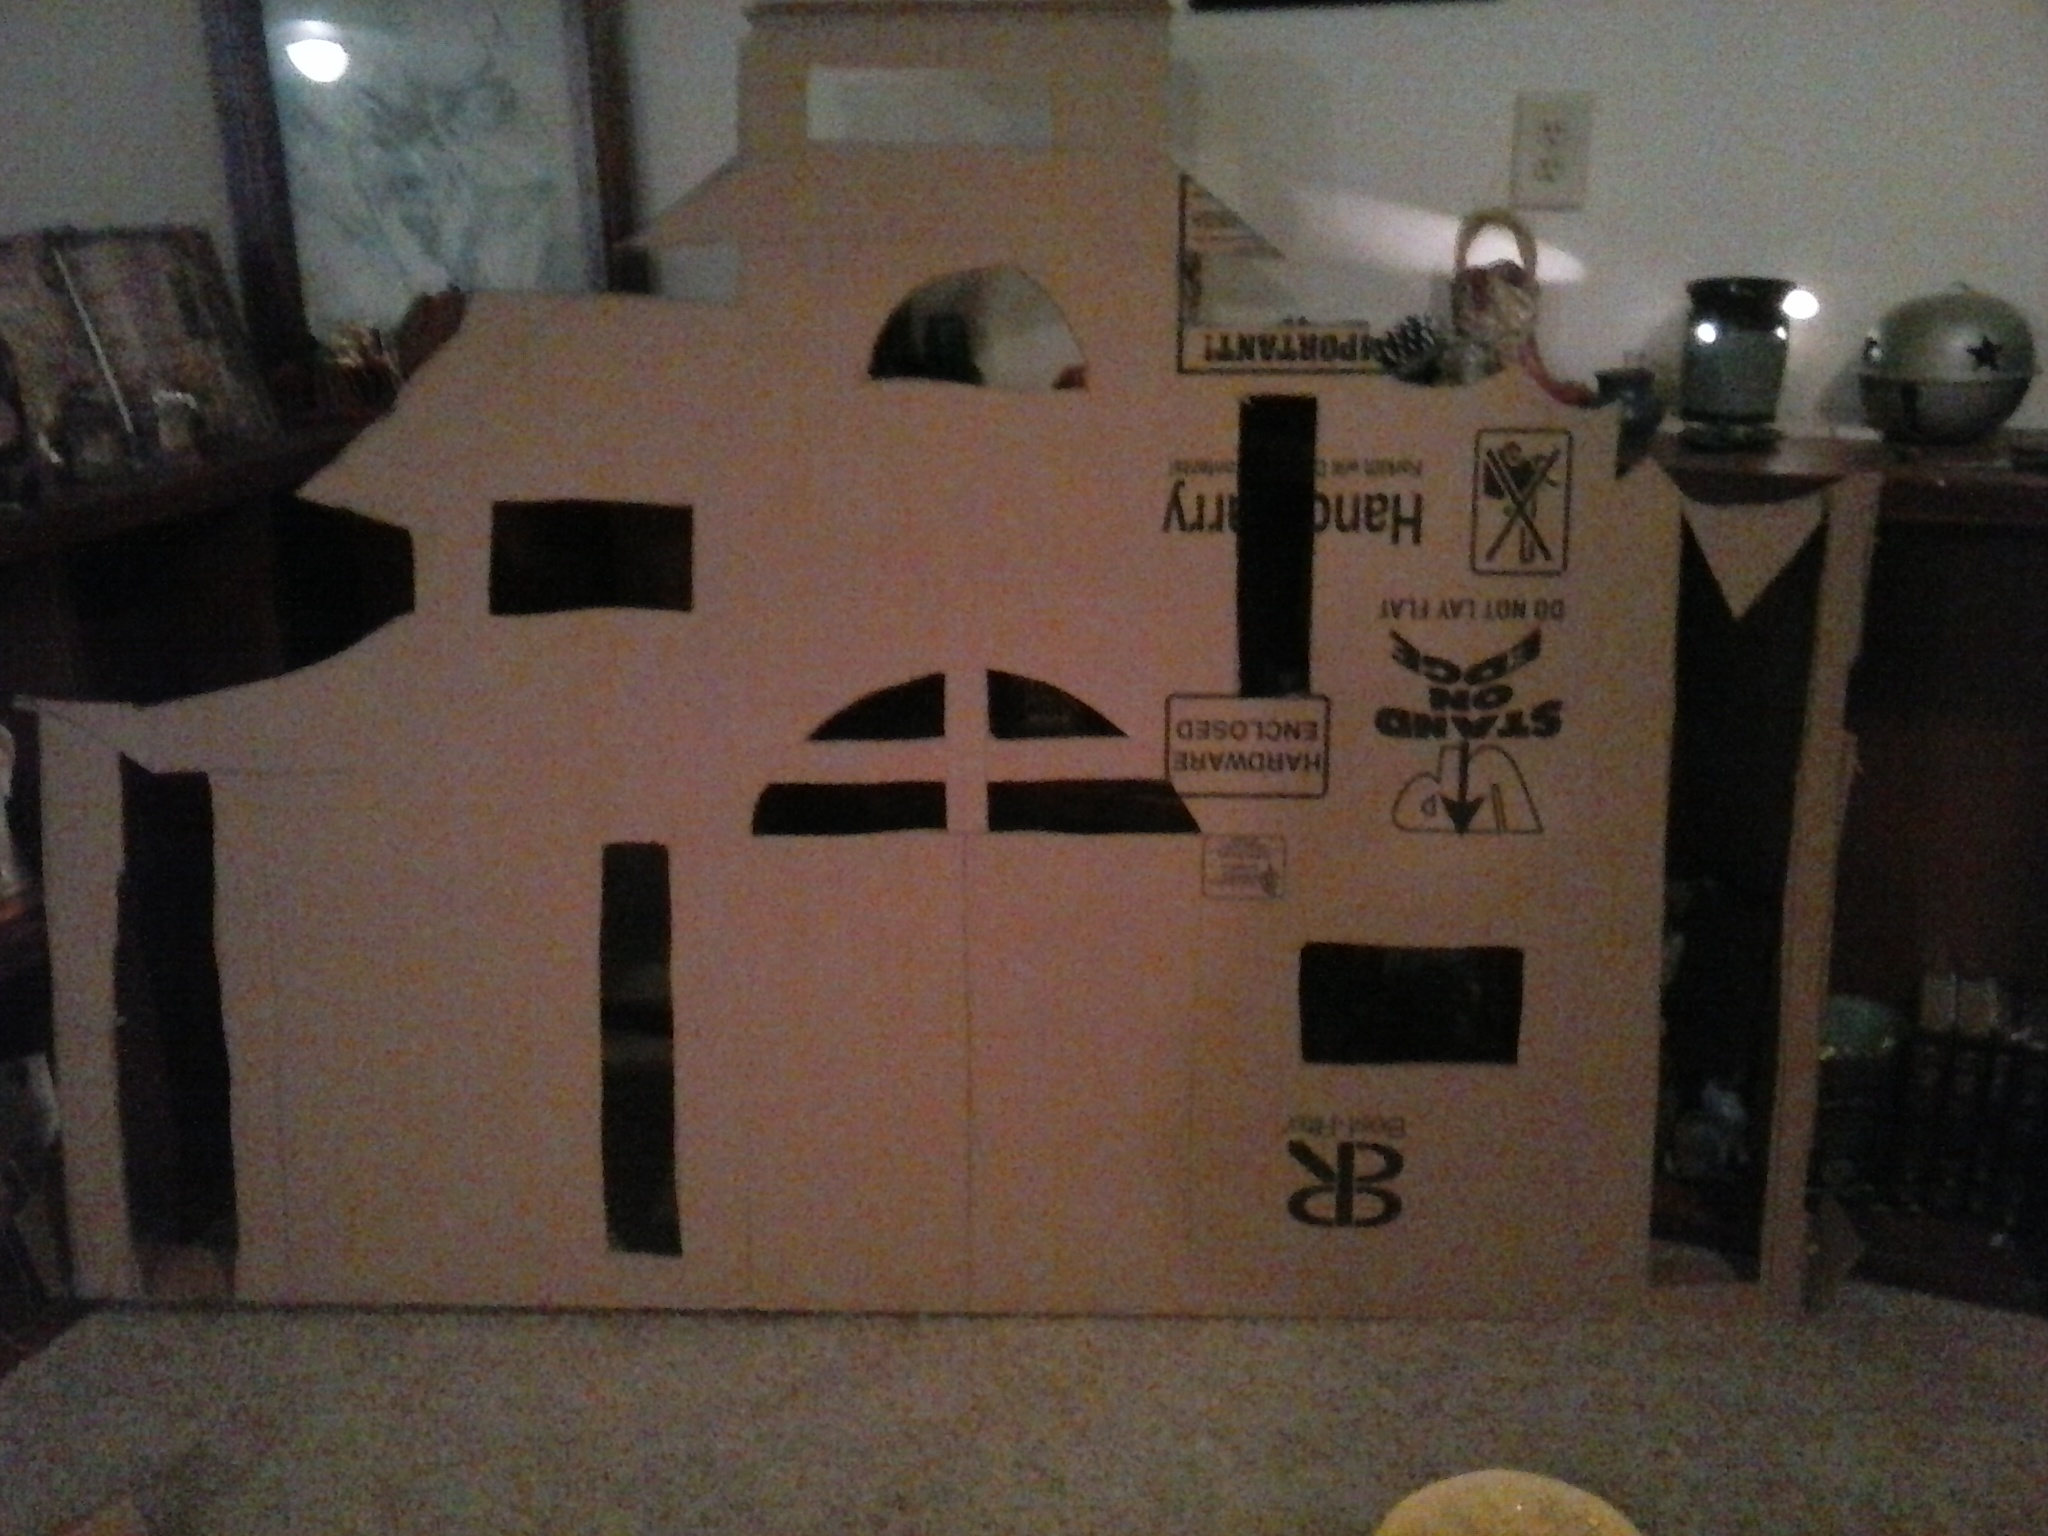 Haunted house decoration made out of cardboard humpty for How to make a cardboard haunted house